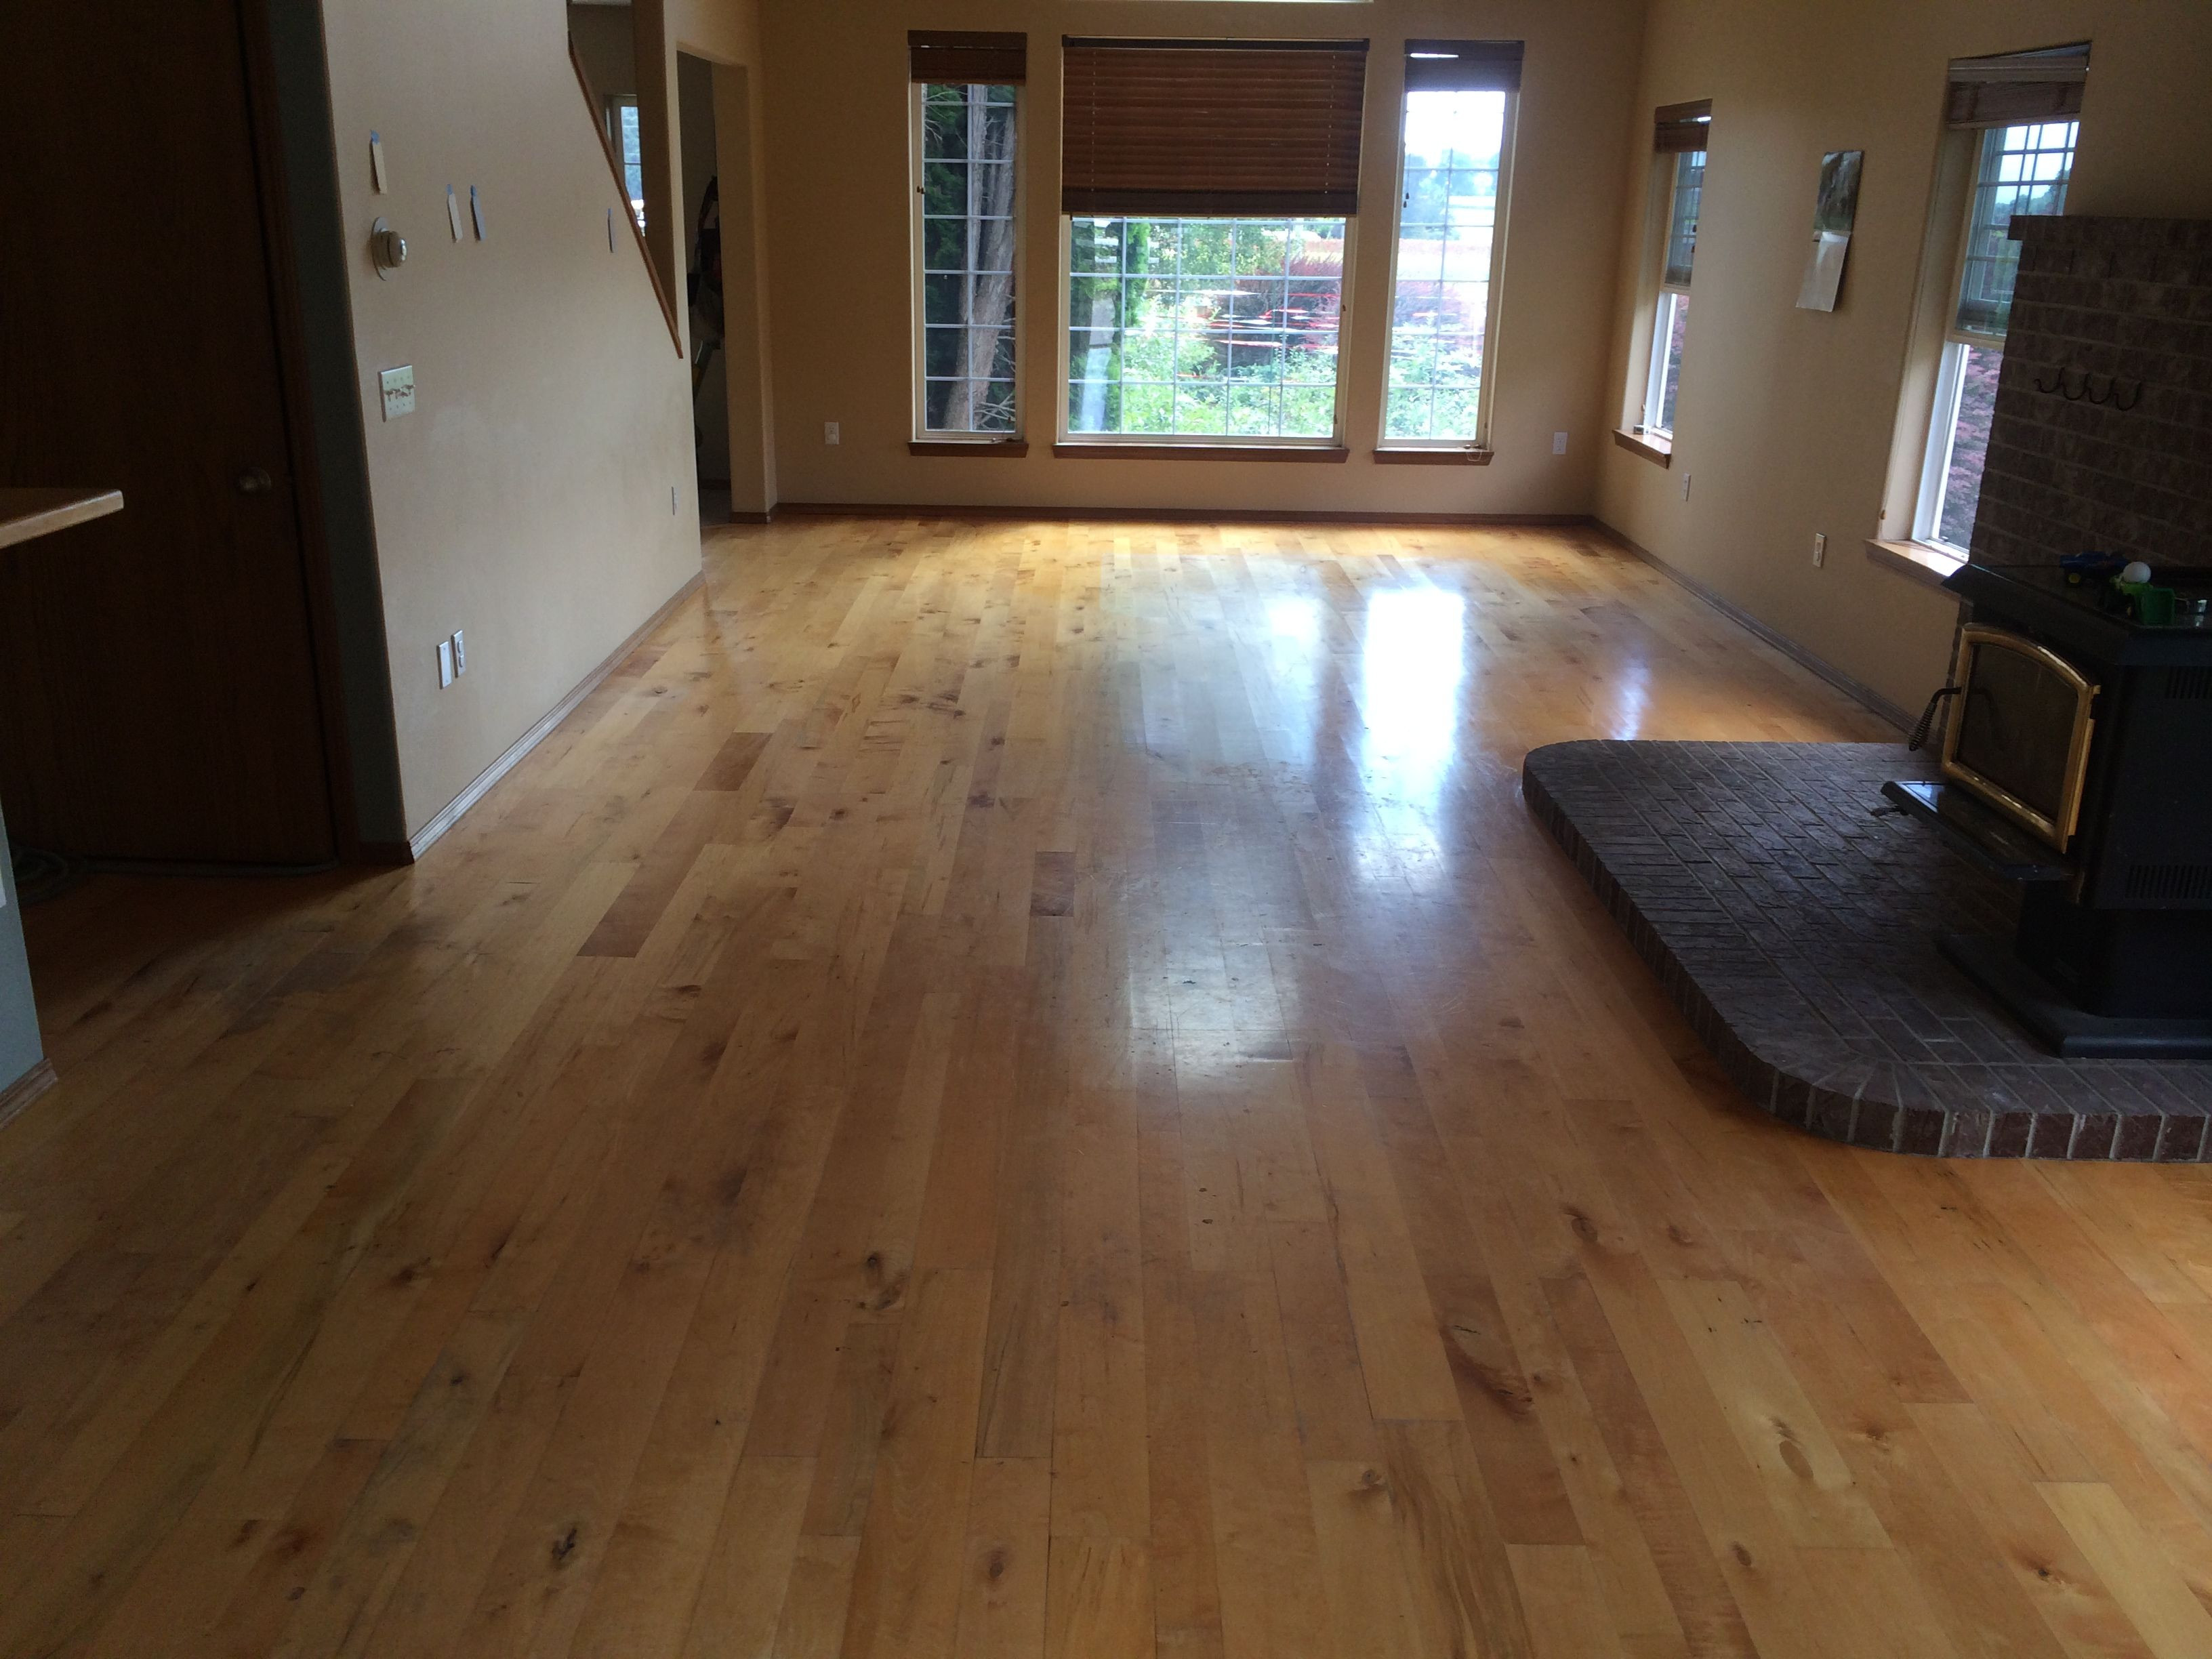 maple hardwood flooring of how much to refinish wood floors refinish done in portland oregon in how much to refinish wood floors refinish done in portland oregon floor is made from maple